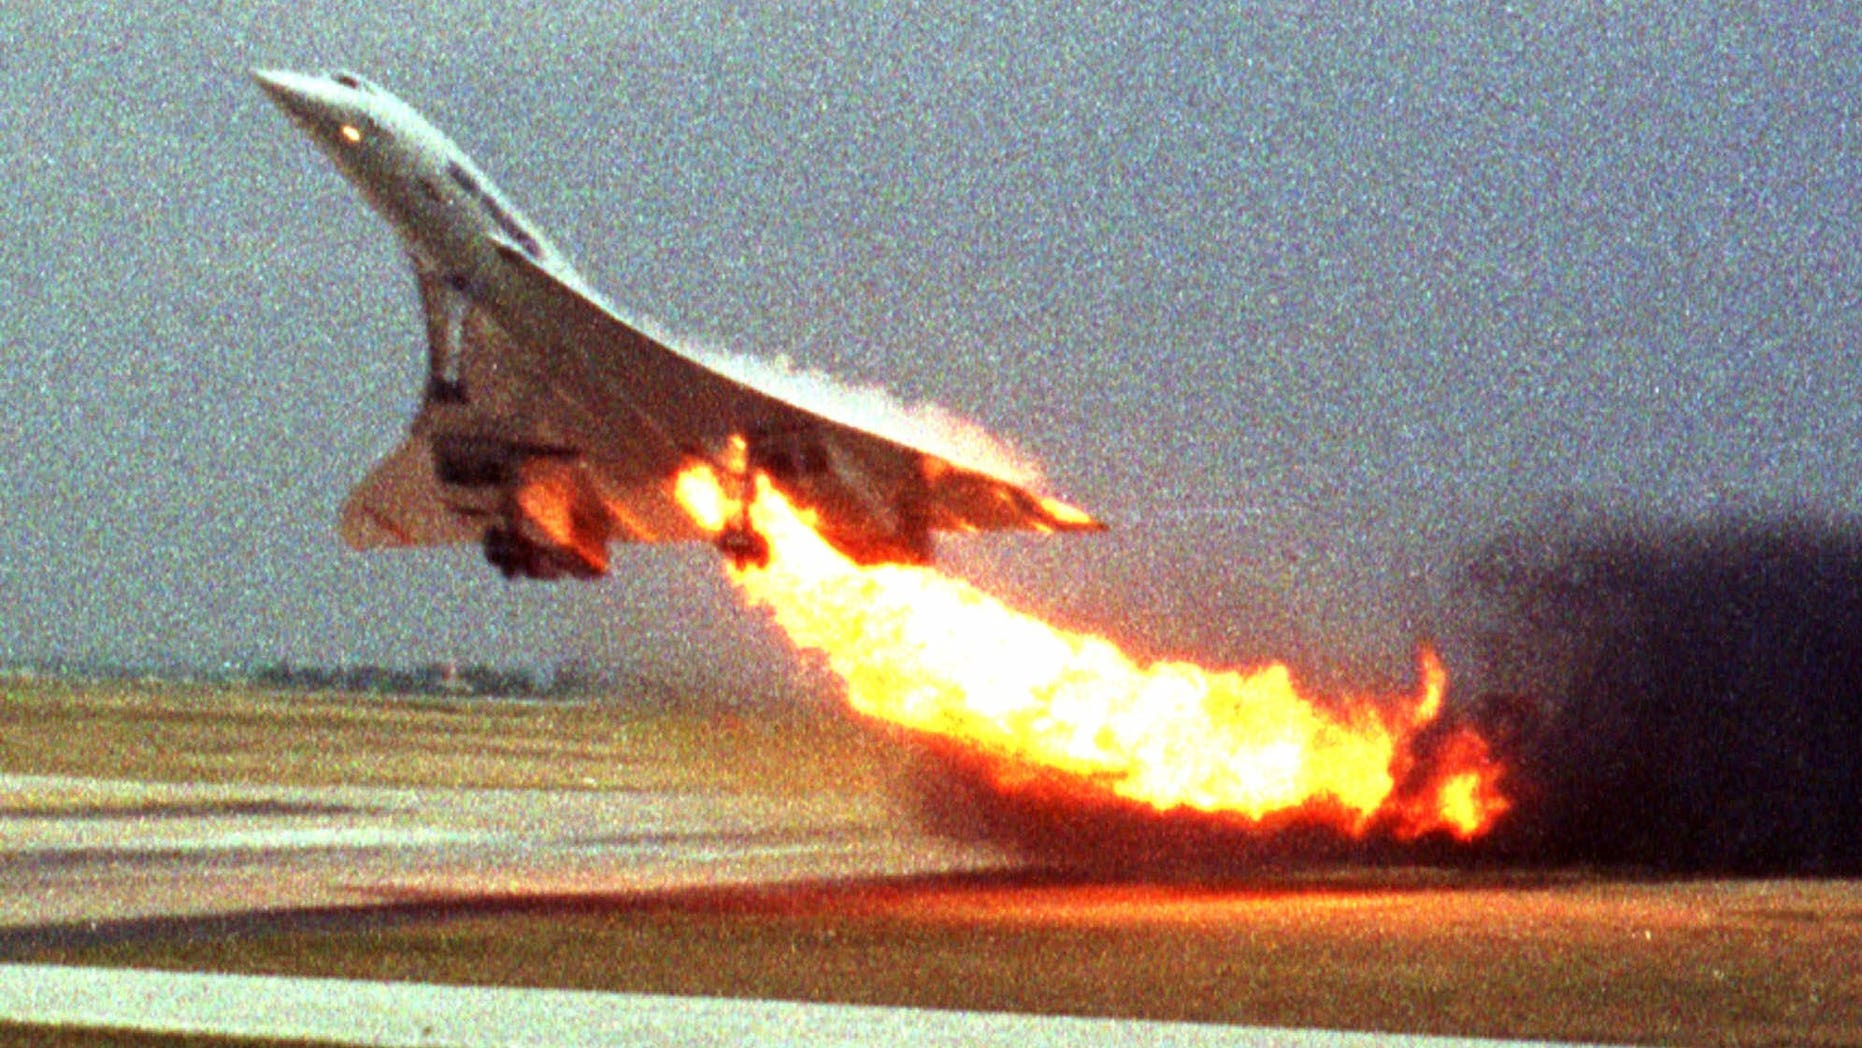 July 25, 2000: Air France Concorde flight 4590 takes off with fire trailing from its engine on the left wing from Charles de Gaulle airport in Paris. The plane crashed shortly after take-off, killing all the 109 people aboard and four others on the ground.